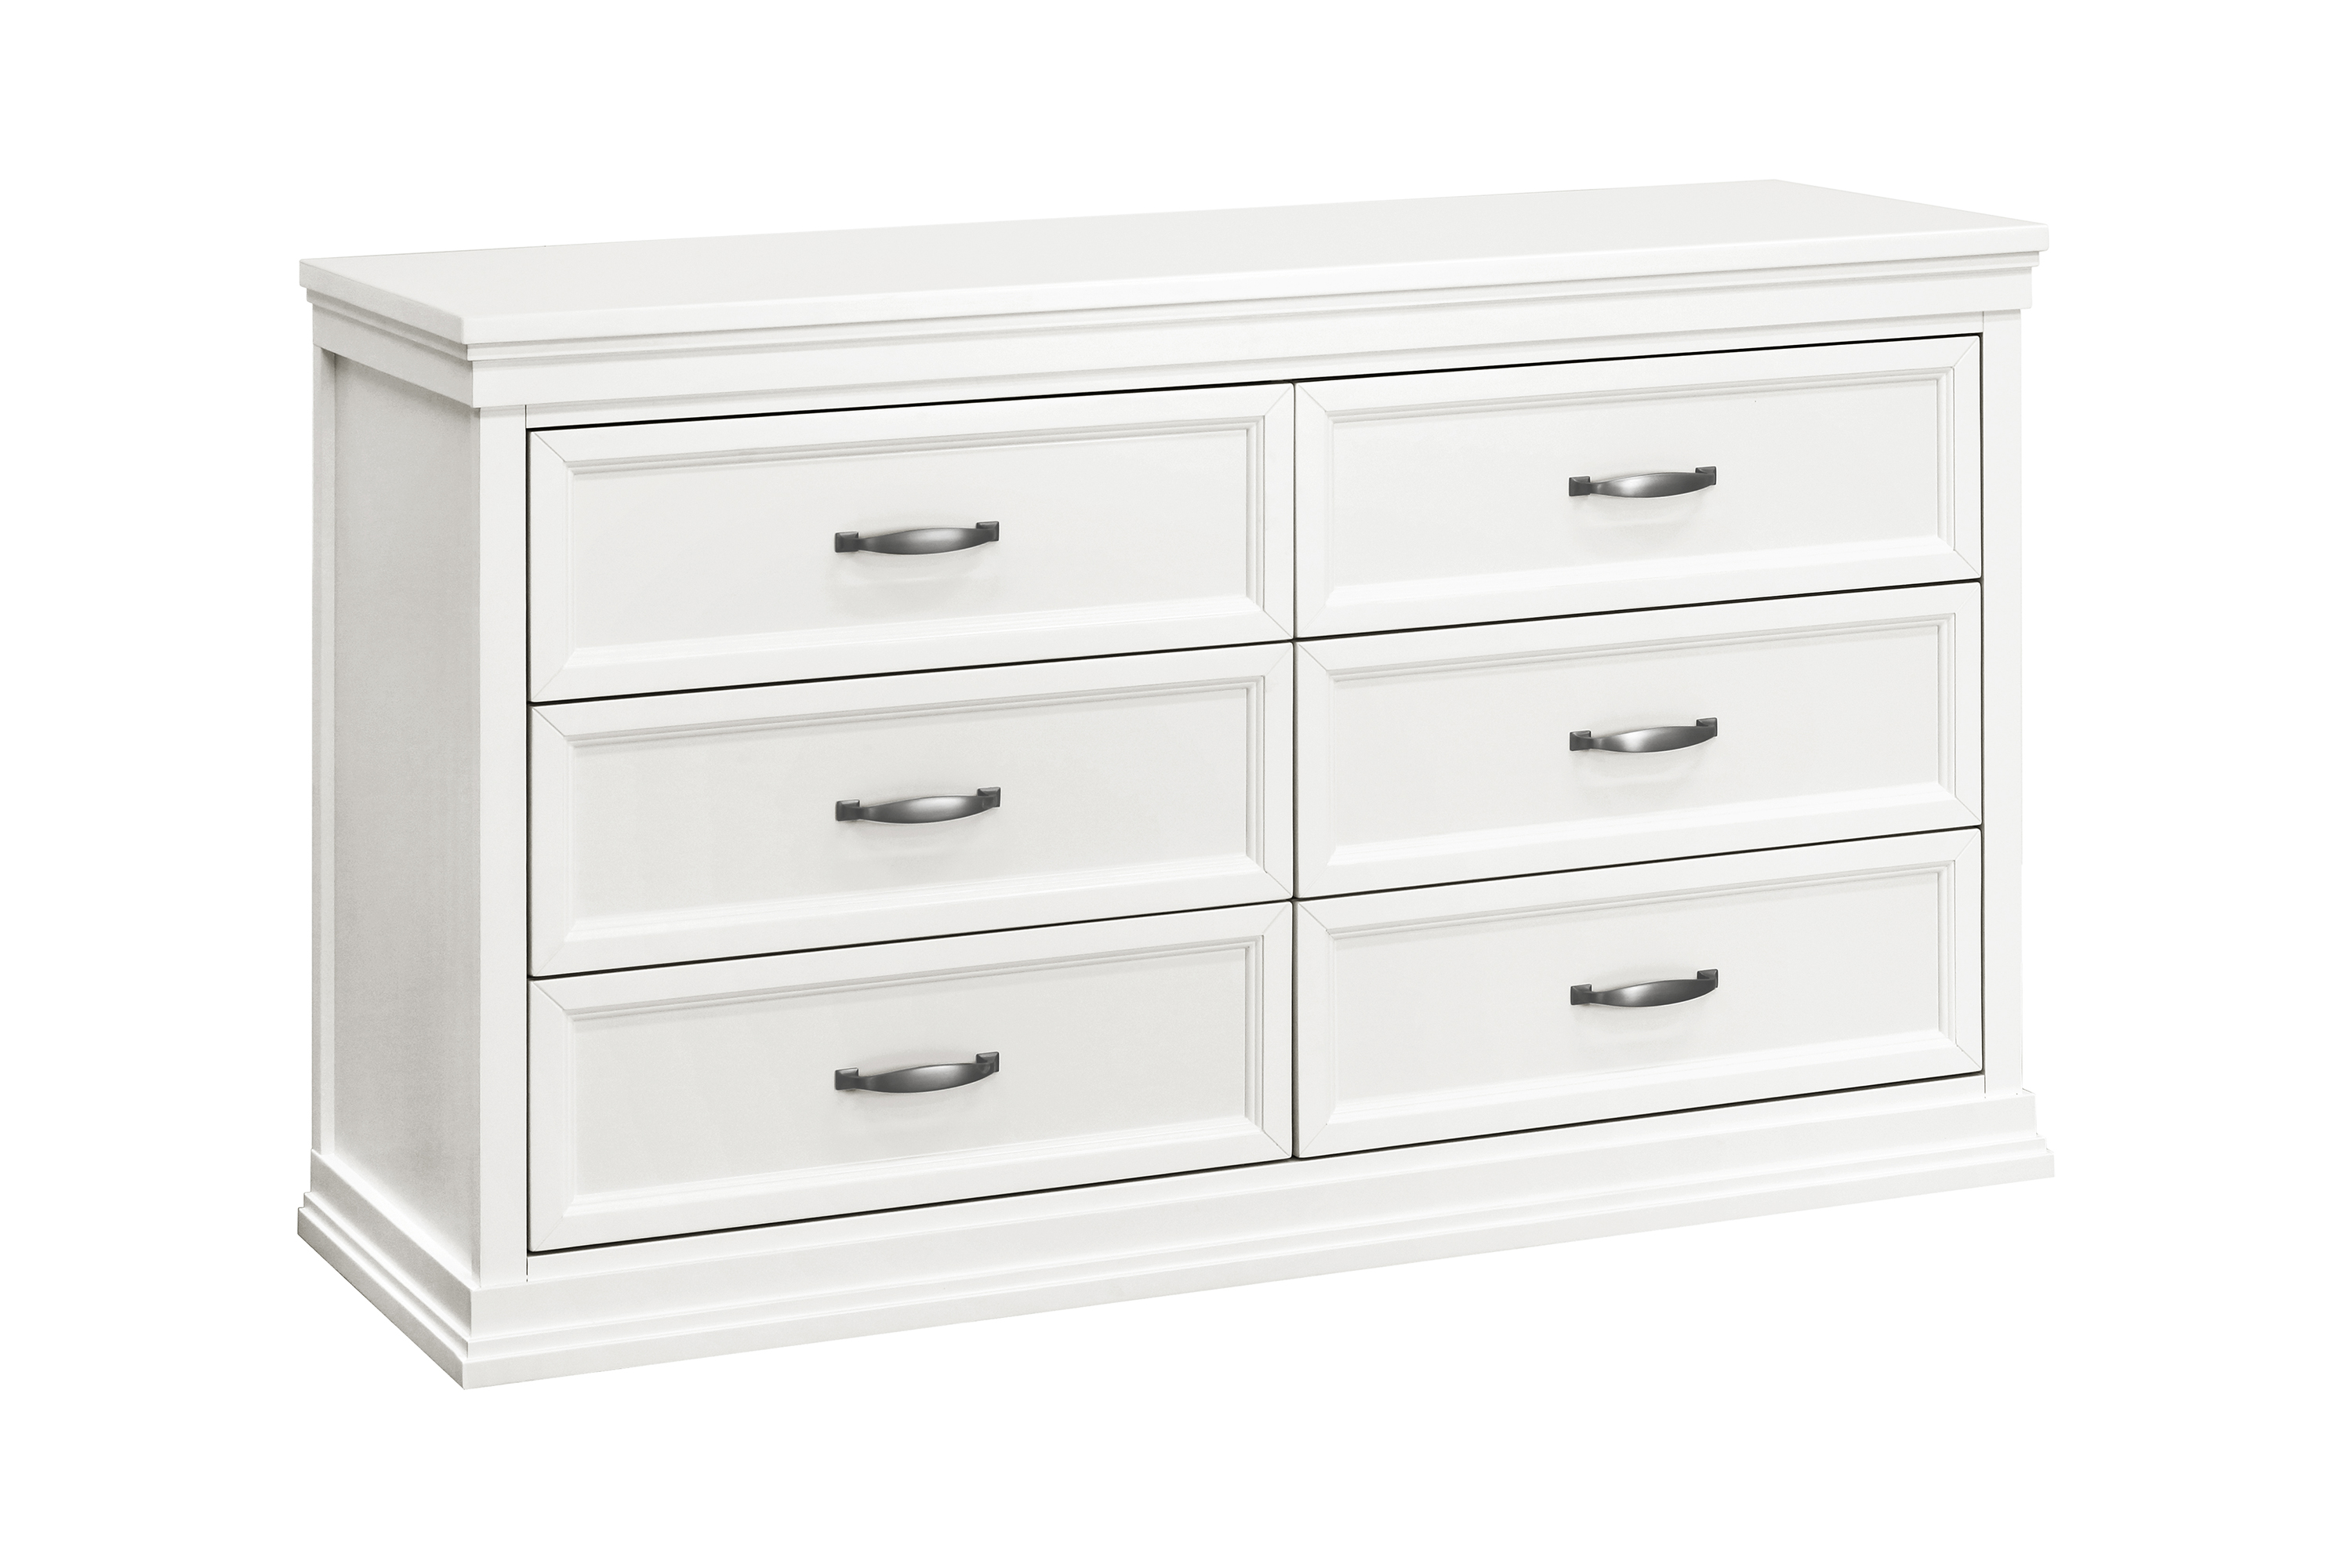 Franklin and Ben Langford 6 Drawer Dresser - Warm White